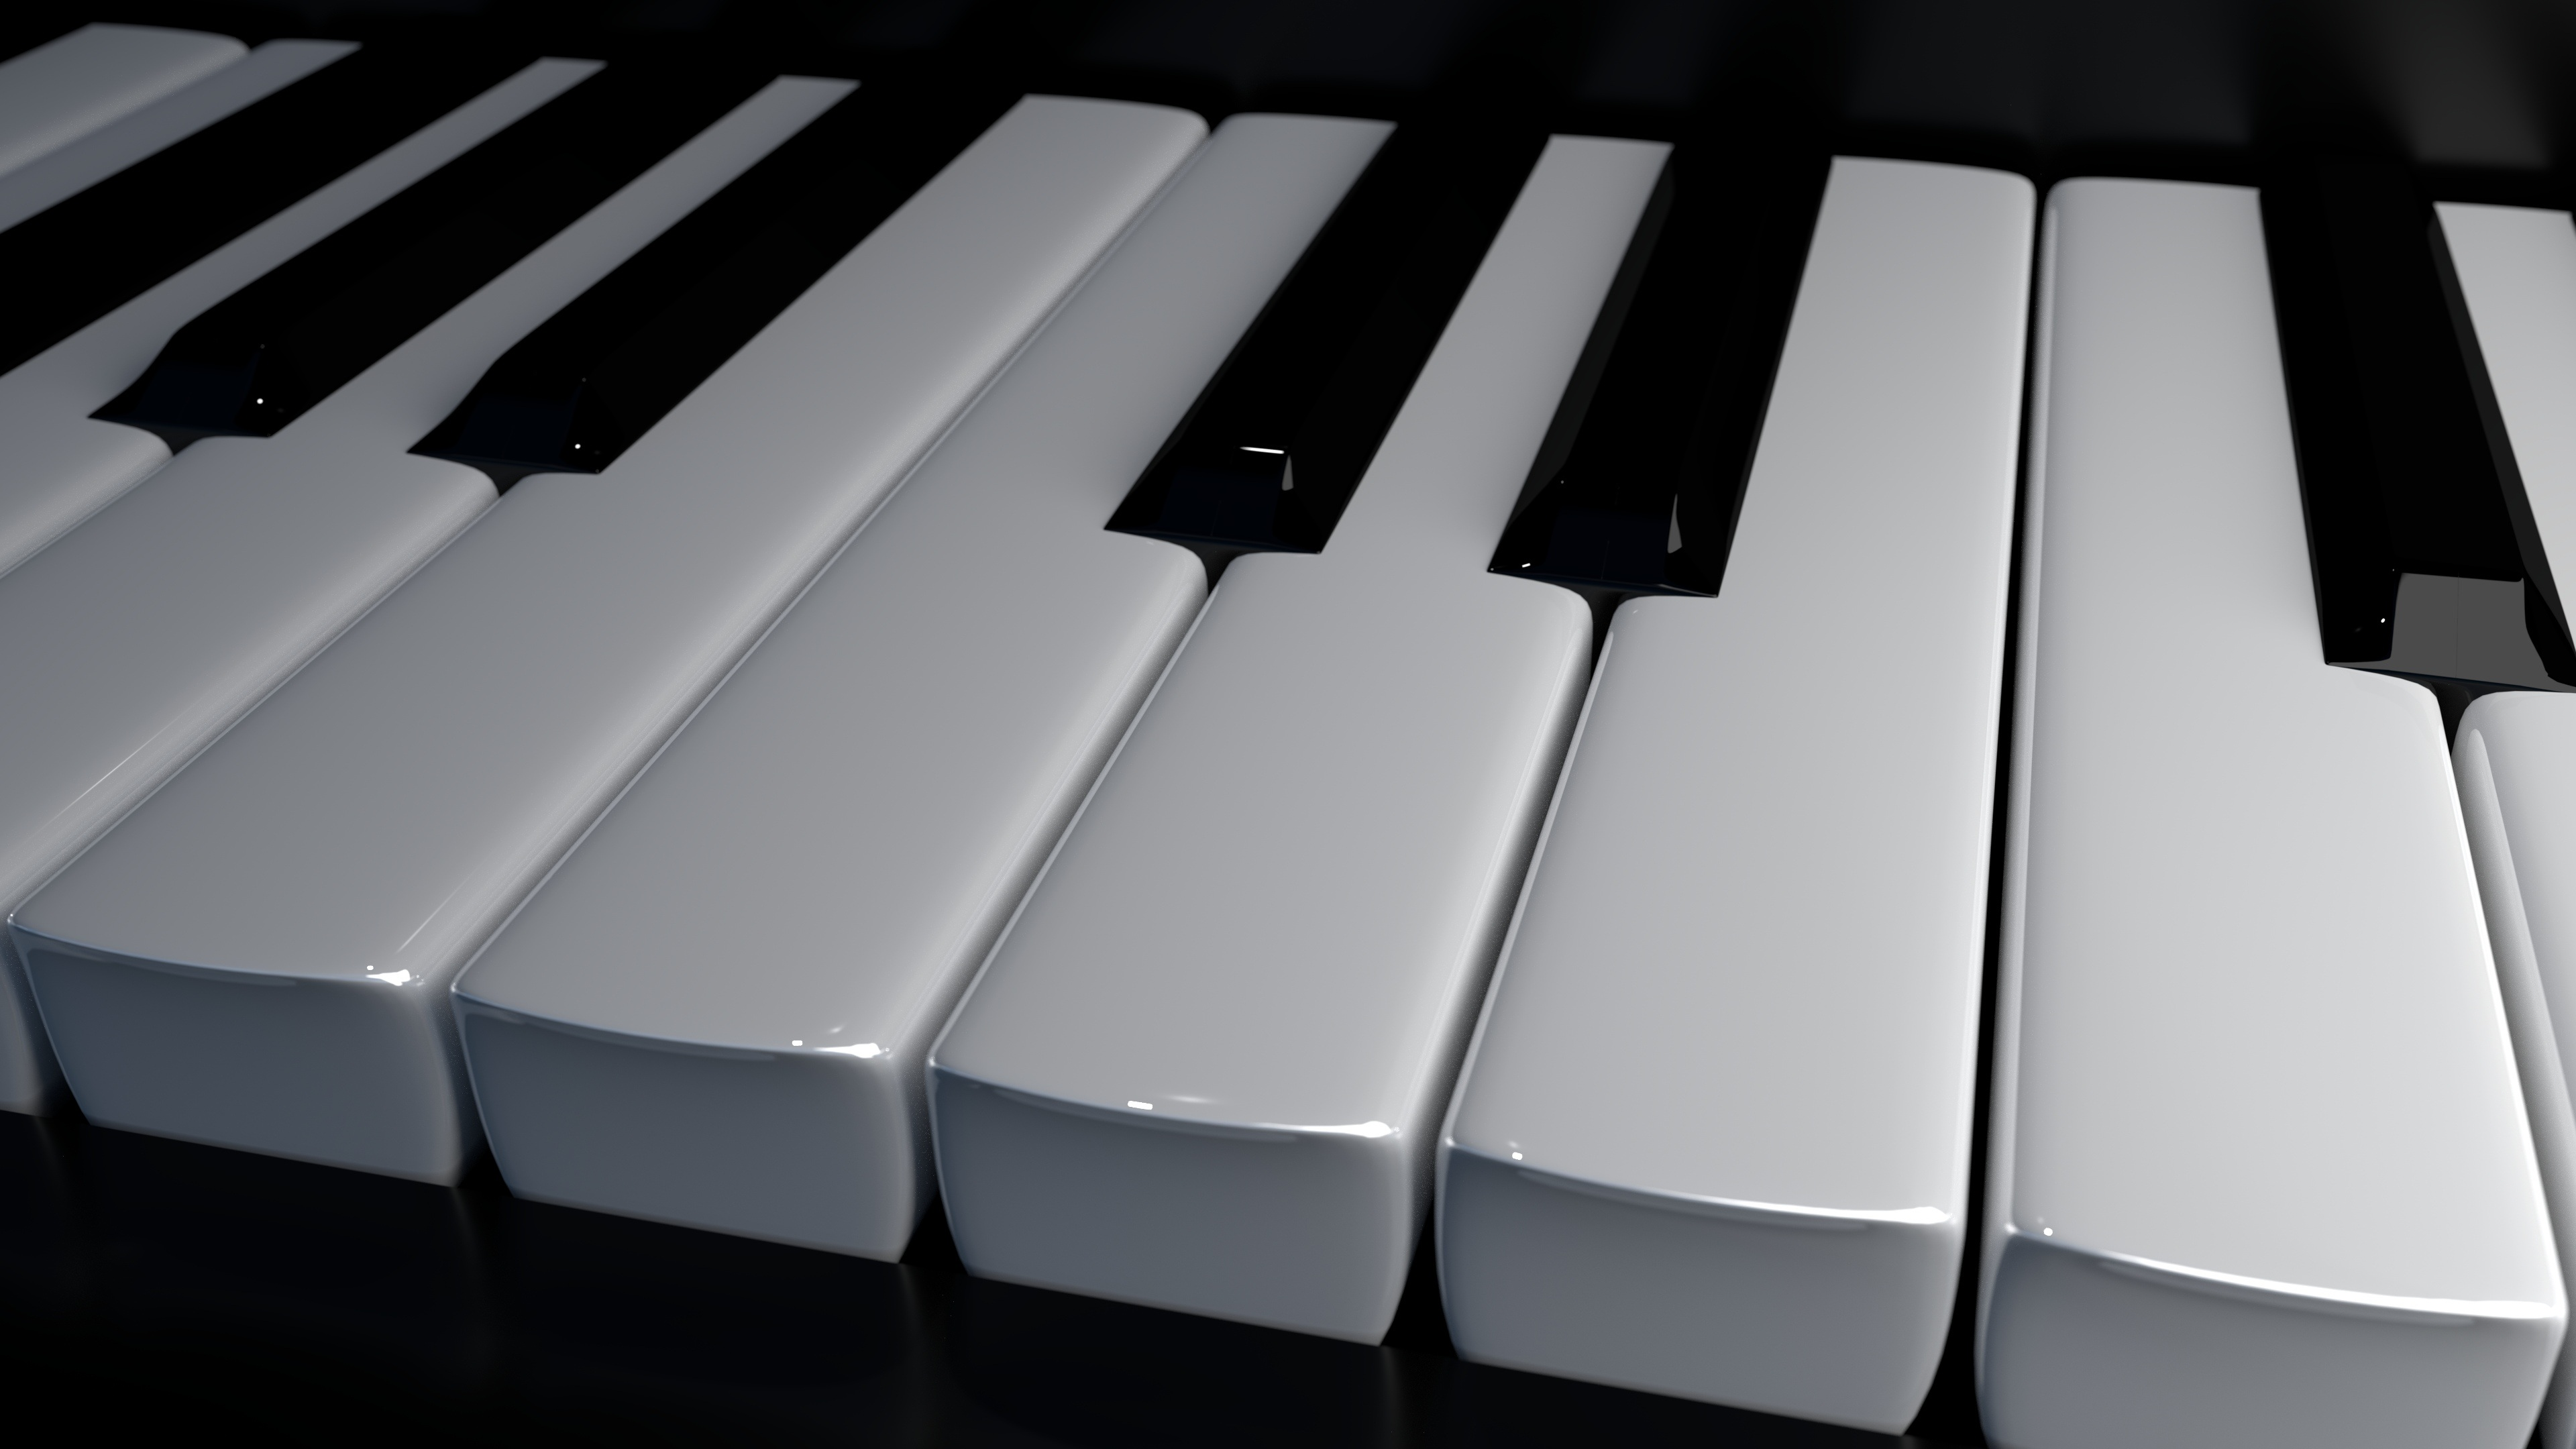 Piano Keyboard 4k Uhd Wallpaper